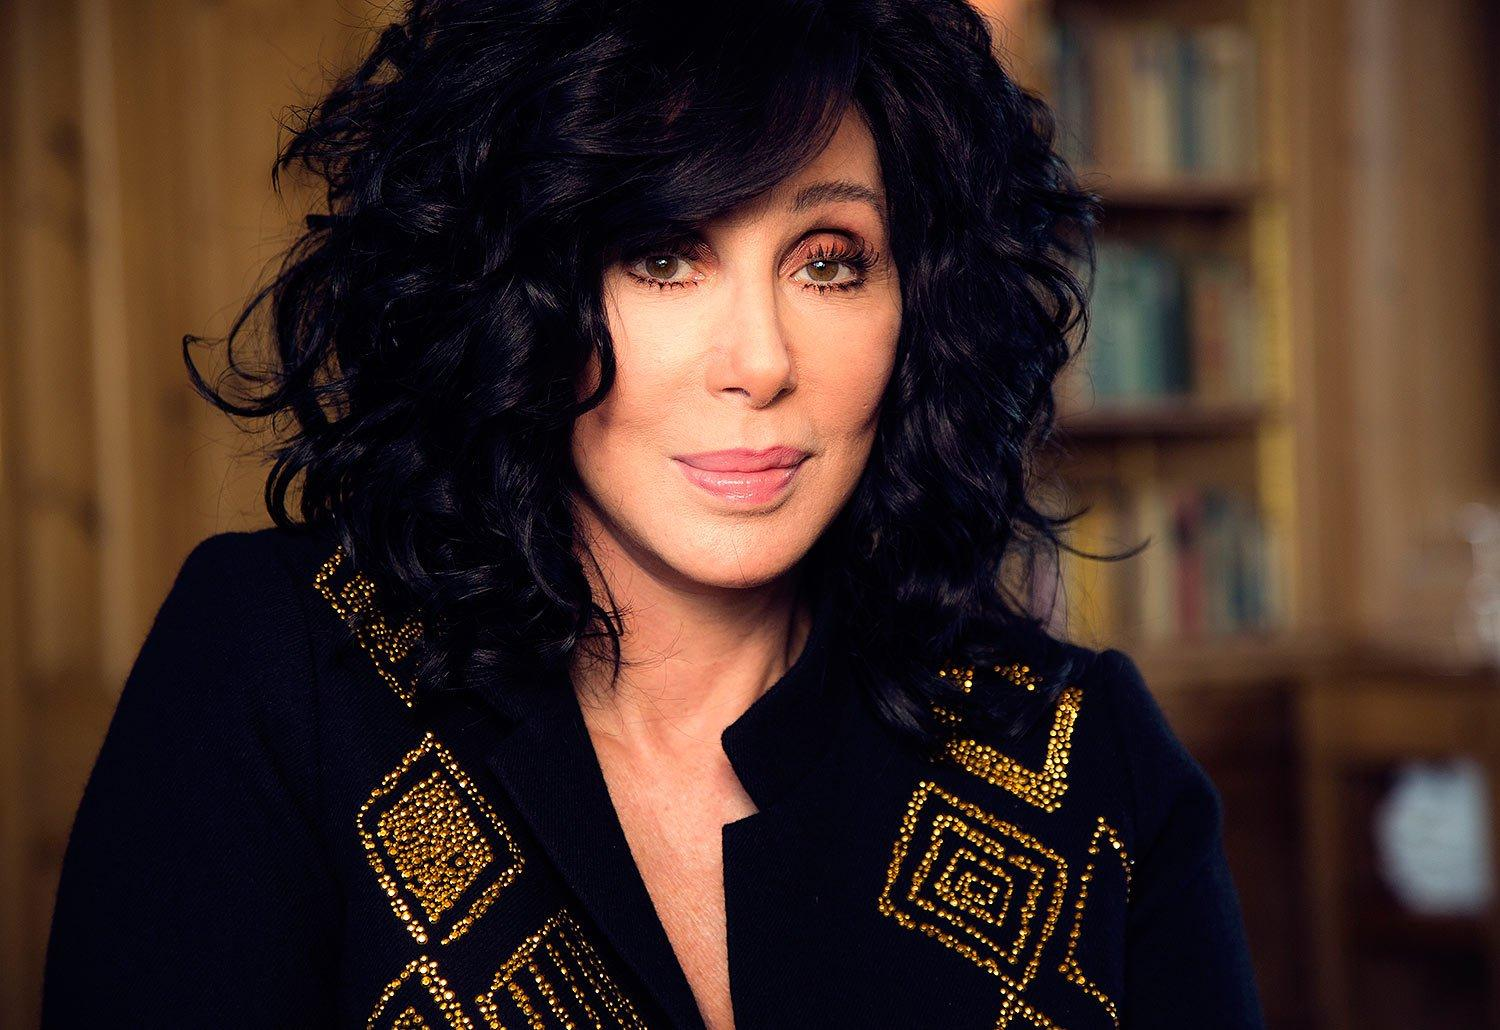 Cher still looking good Wallpapers and Backgrounds Image